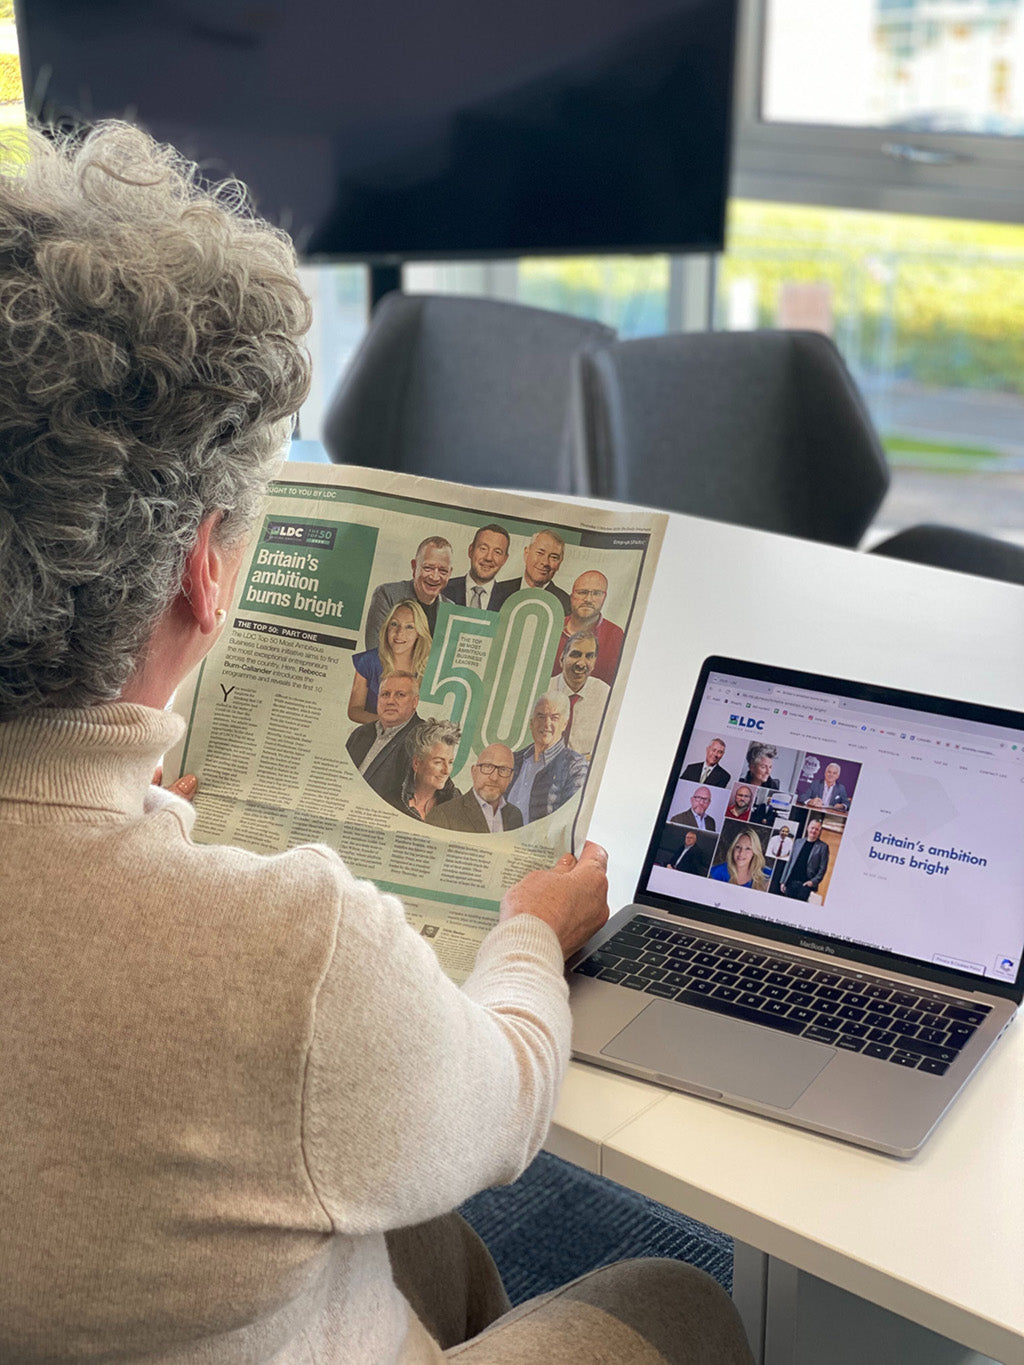 Photo showing a white woman with short silver hair sat at a laptop and holding a newspaper with her back to the camera